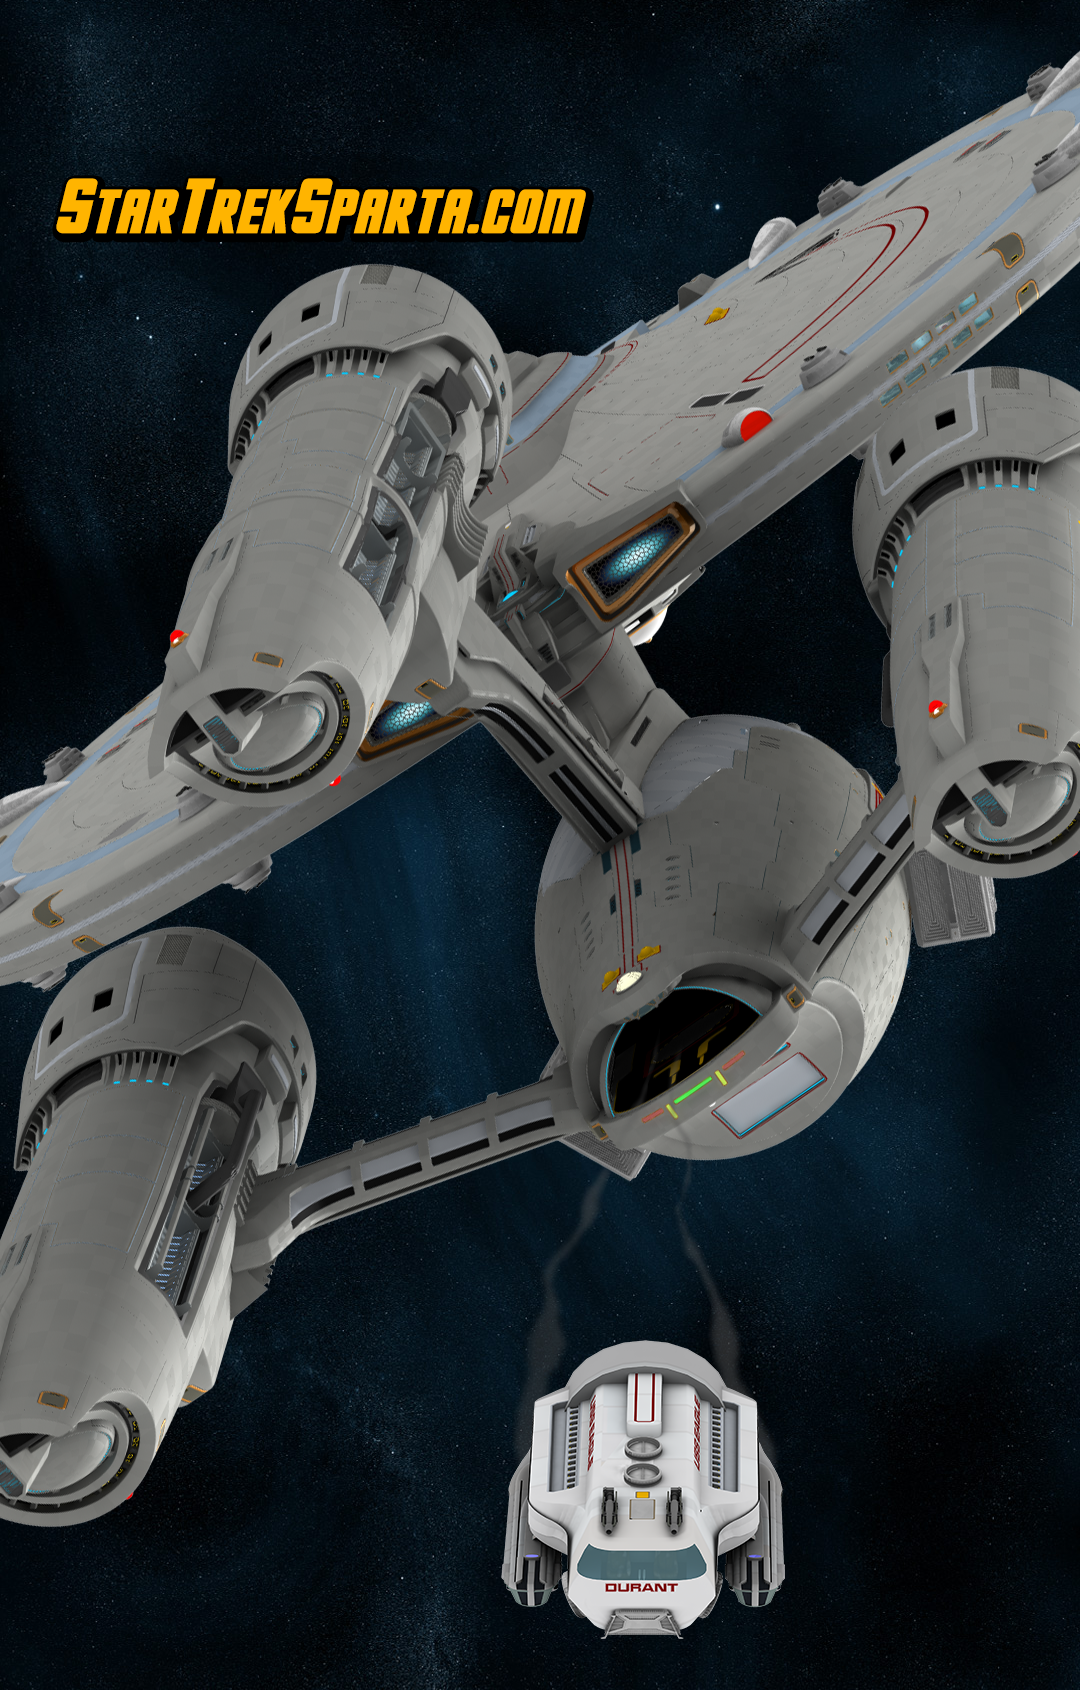 the star ship sparta ncc 1300 from star trek sparta the free webcomic set in the new jj abrams universe ww star trek ships star trek art star trek starships pinterest